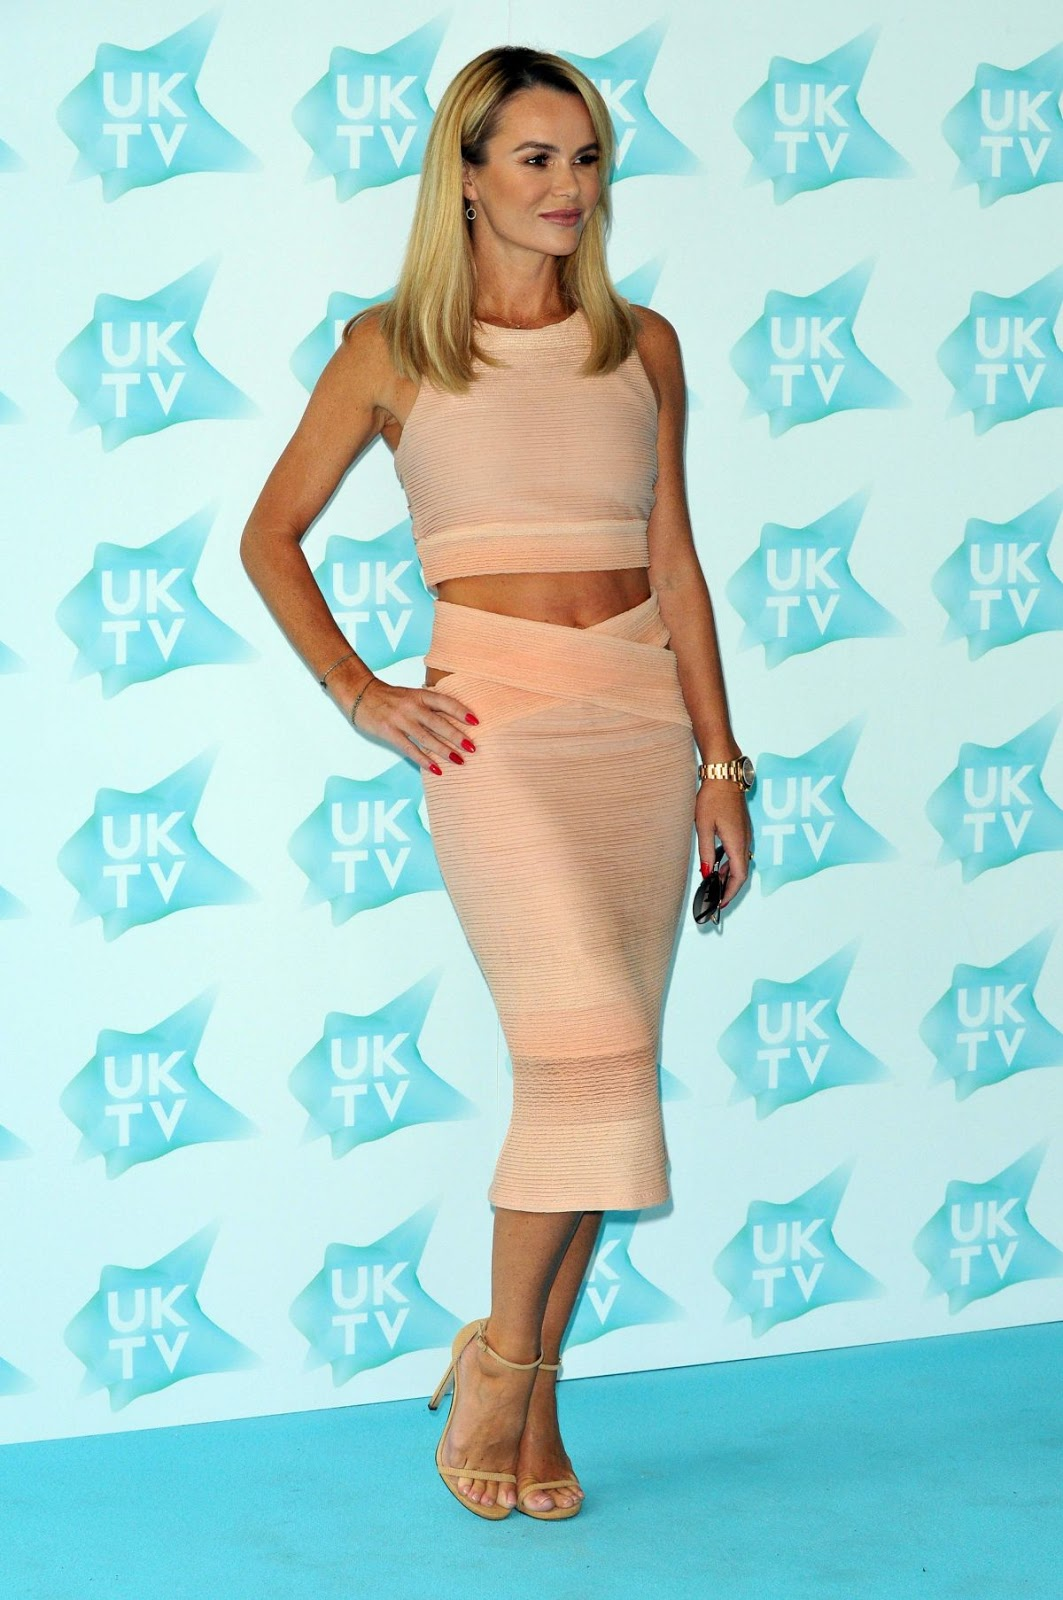 Britain's Got Talent judge Amanda Holden At UK-TV Live New Season Launch In London Hd Photos